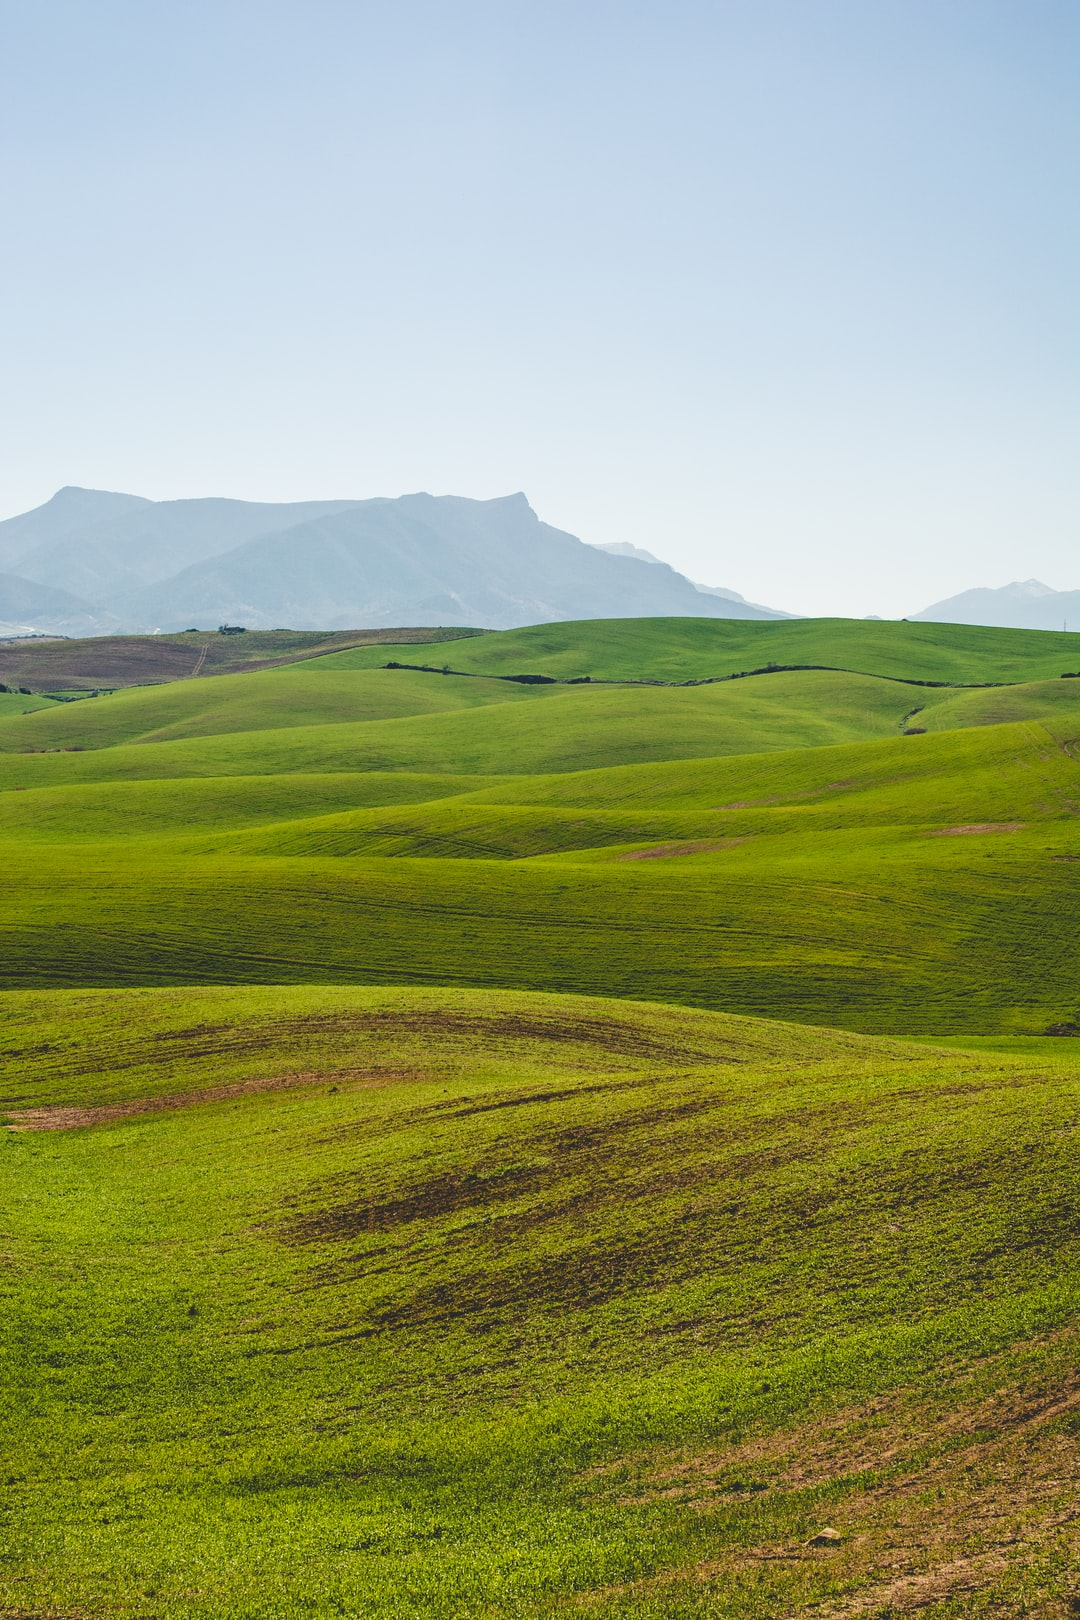 20 hill pictures images hd download free photos on - Open field wallpaper ...